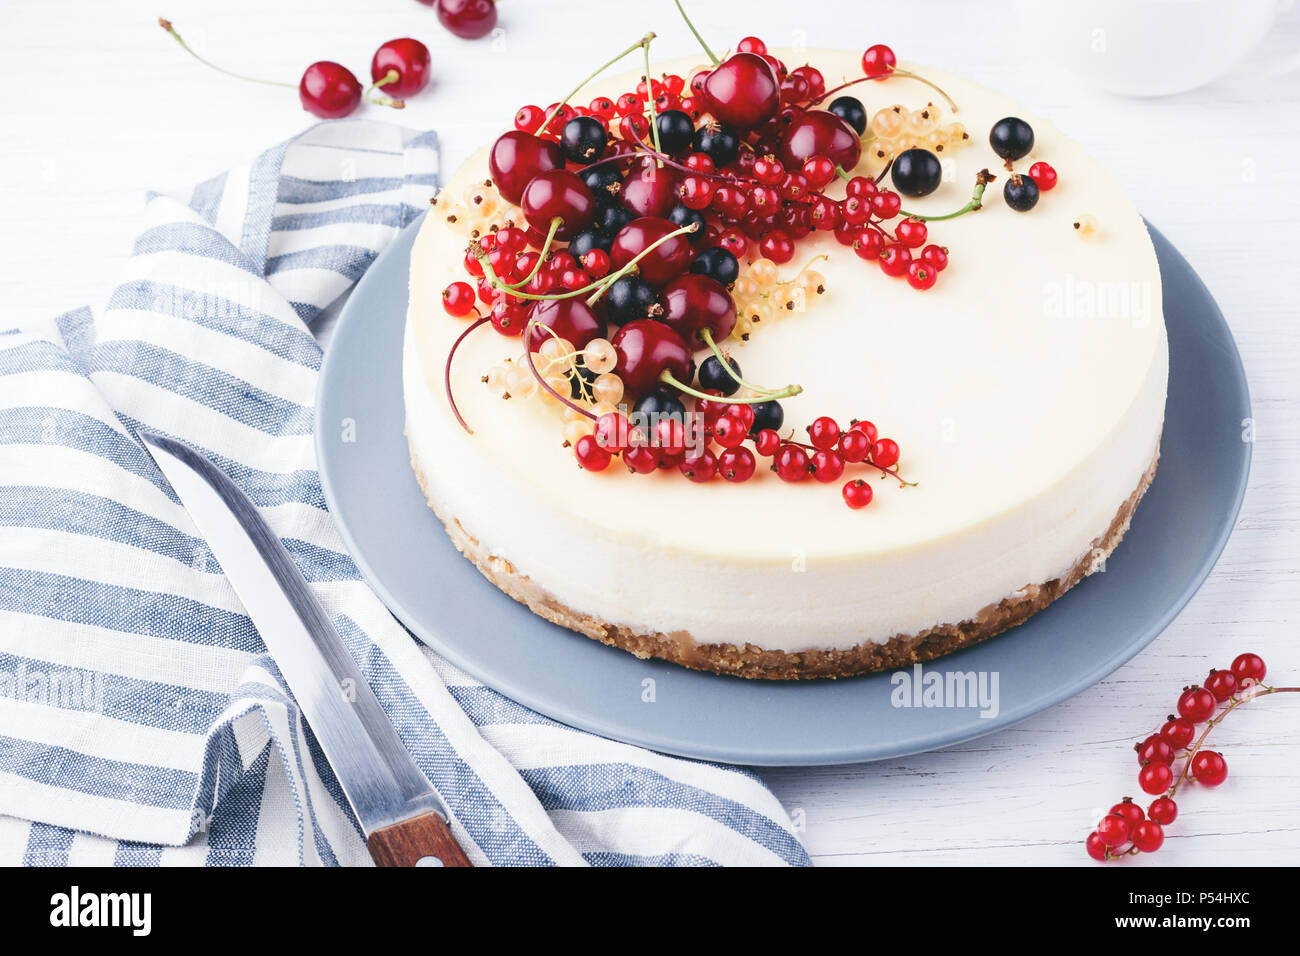 New York cheese cake aux fruits rouges sur la table en bois blanc. Vue d'angle. Photo Stock